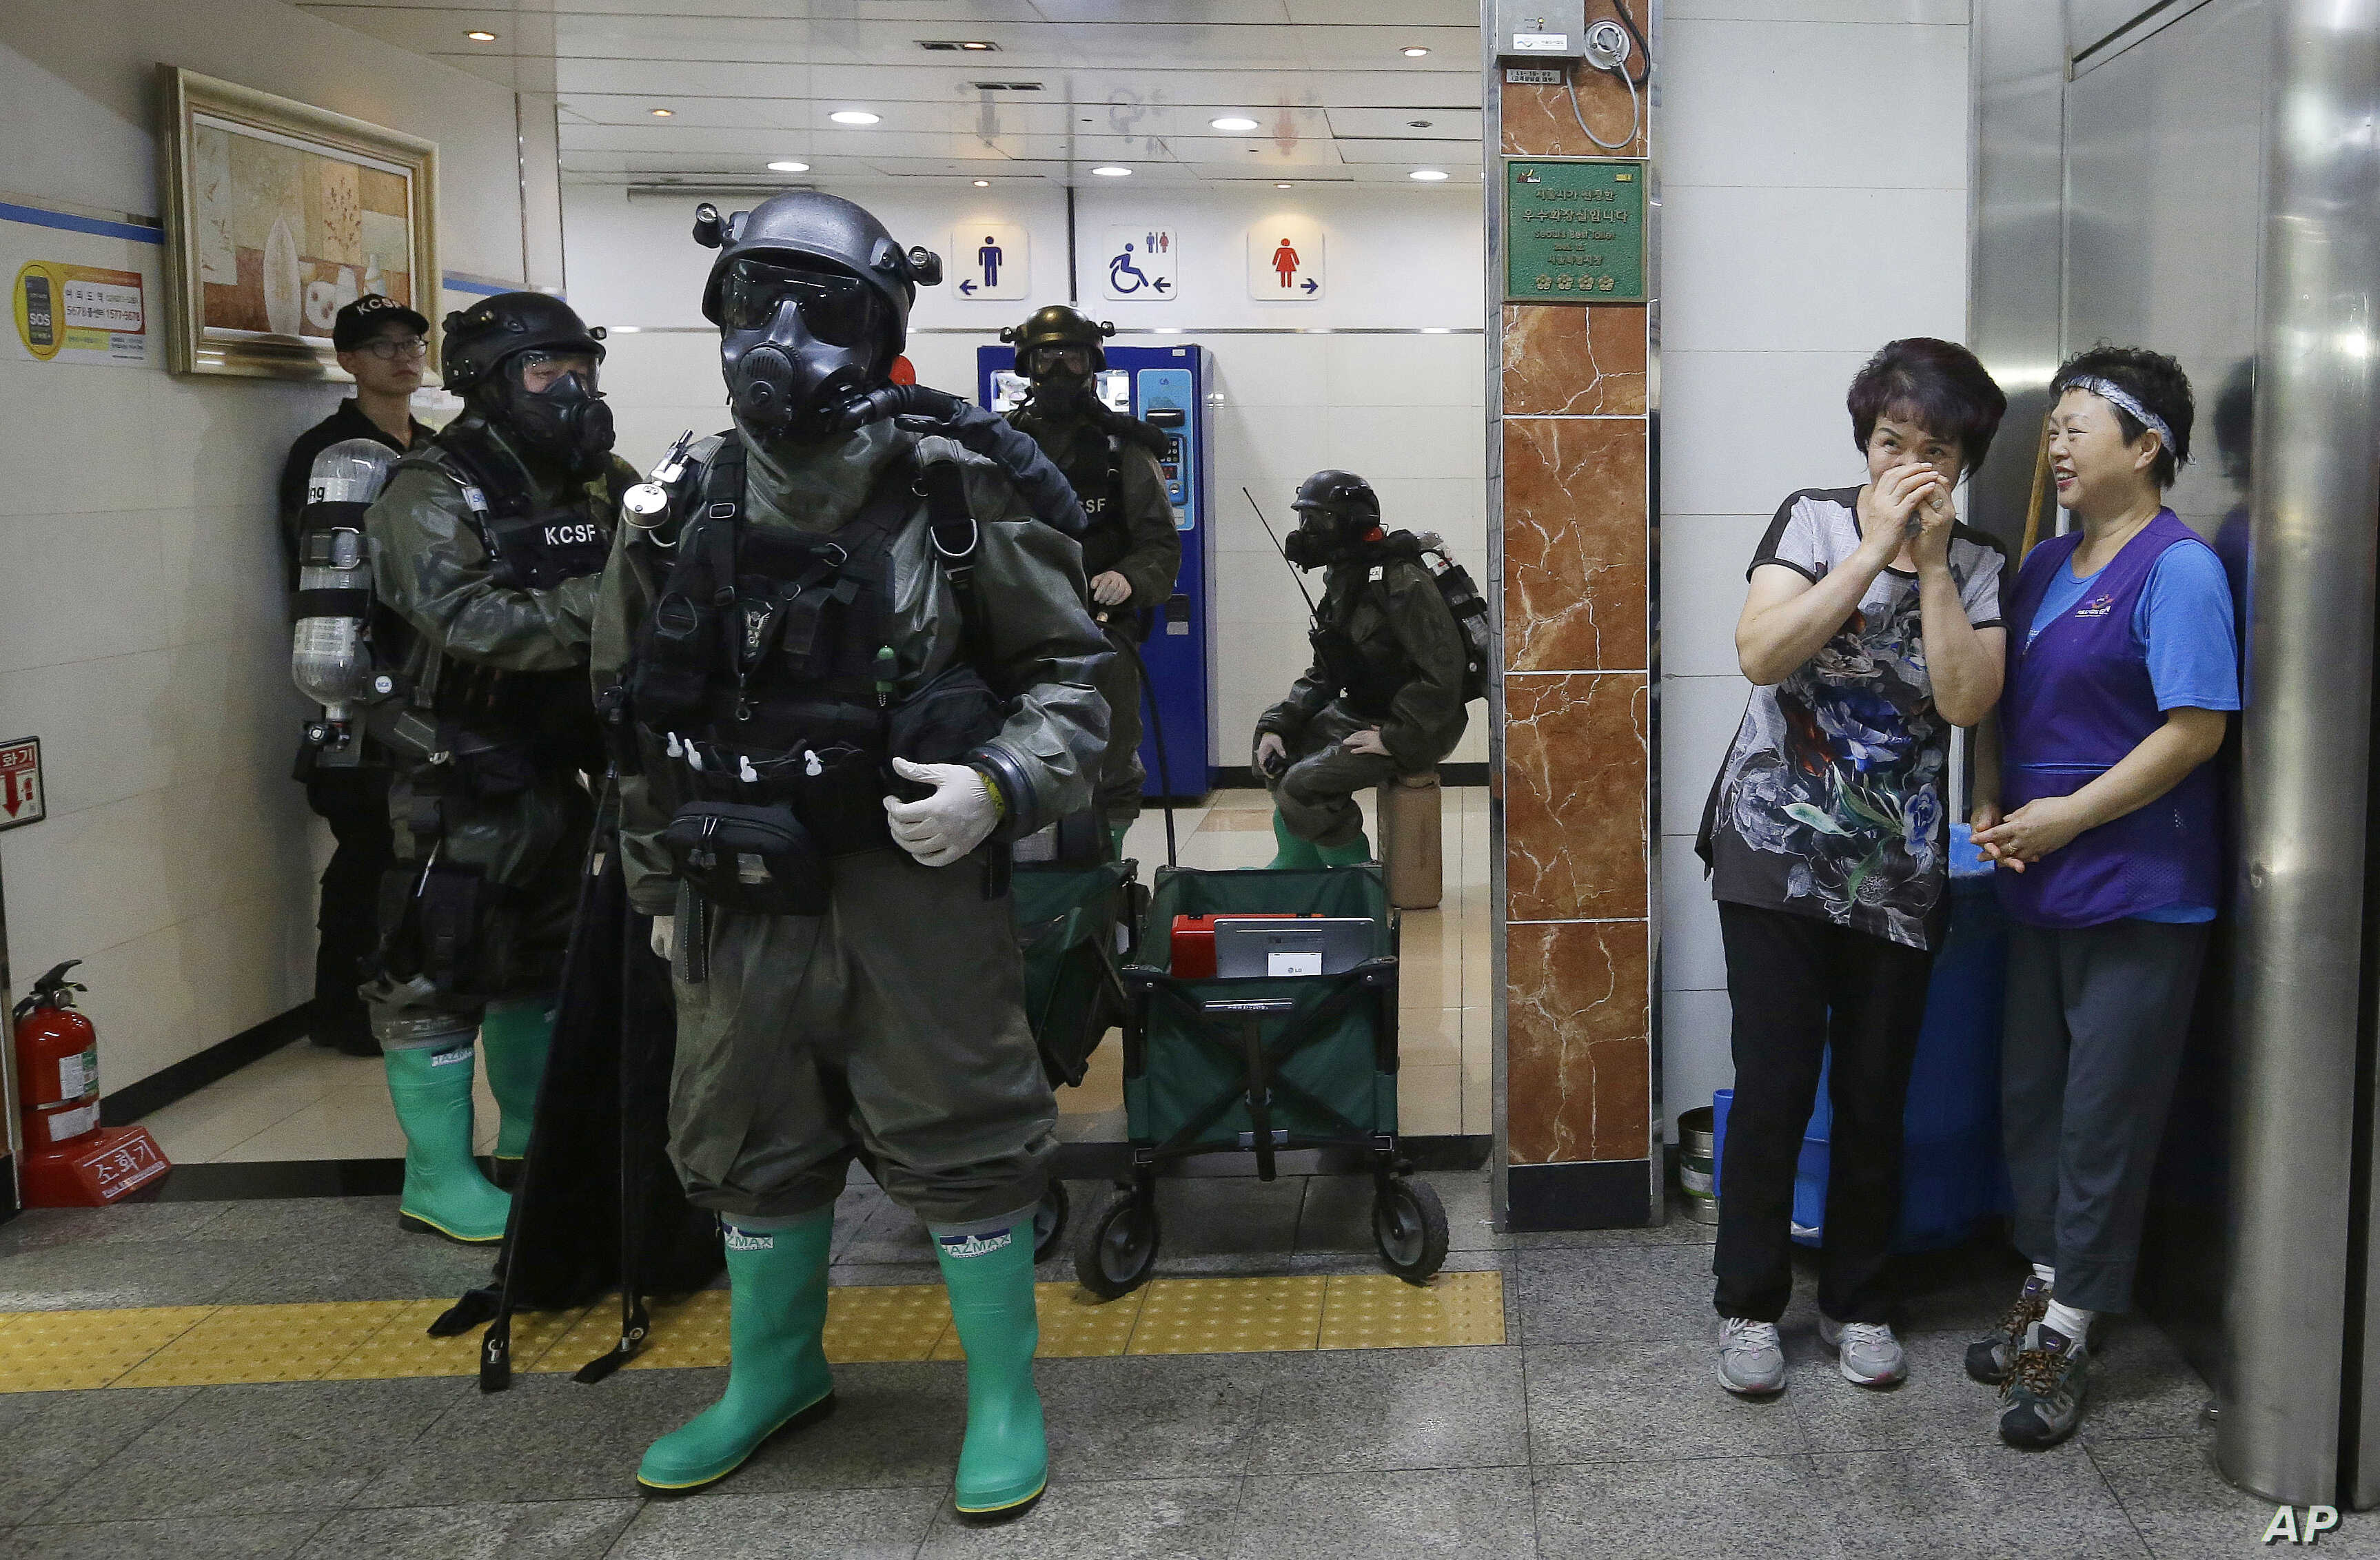 South Korean army soldiers stand as women watch during an anti-terror drill as part of the Ulchi Freedom Guardian exercise, at Yoido Subway Station in Seoul, South Korea, Aug. 23, 2016.